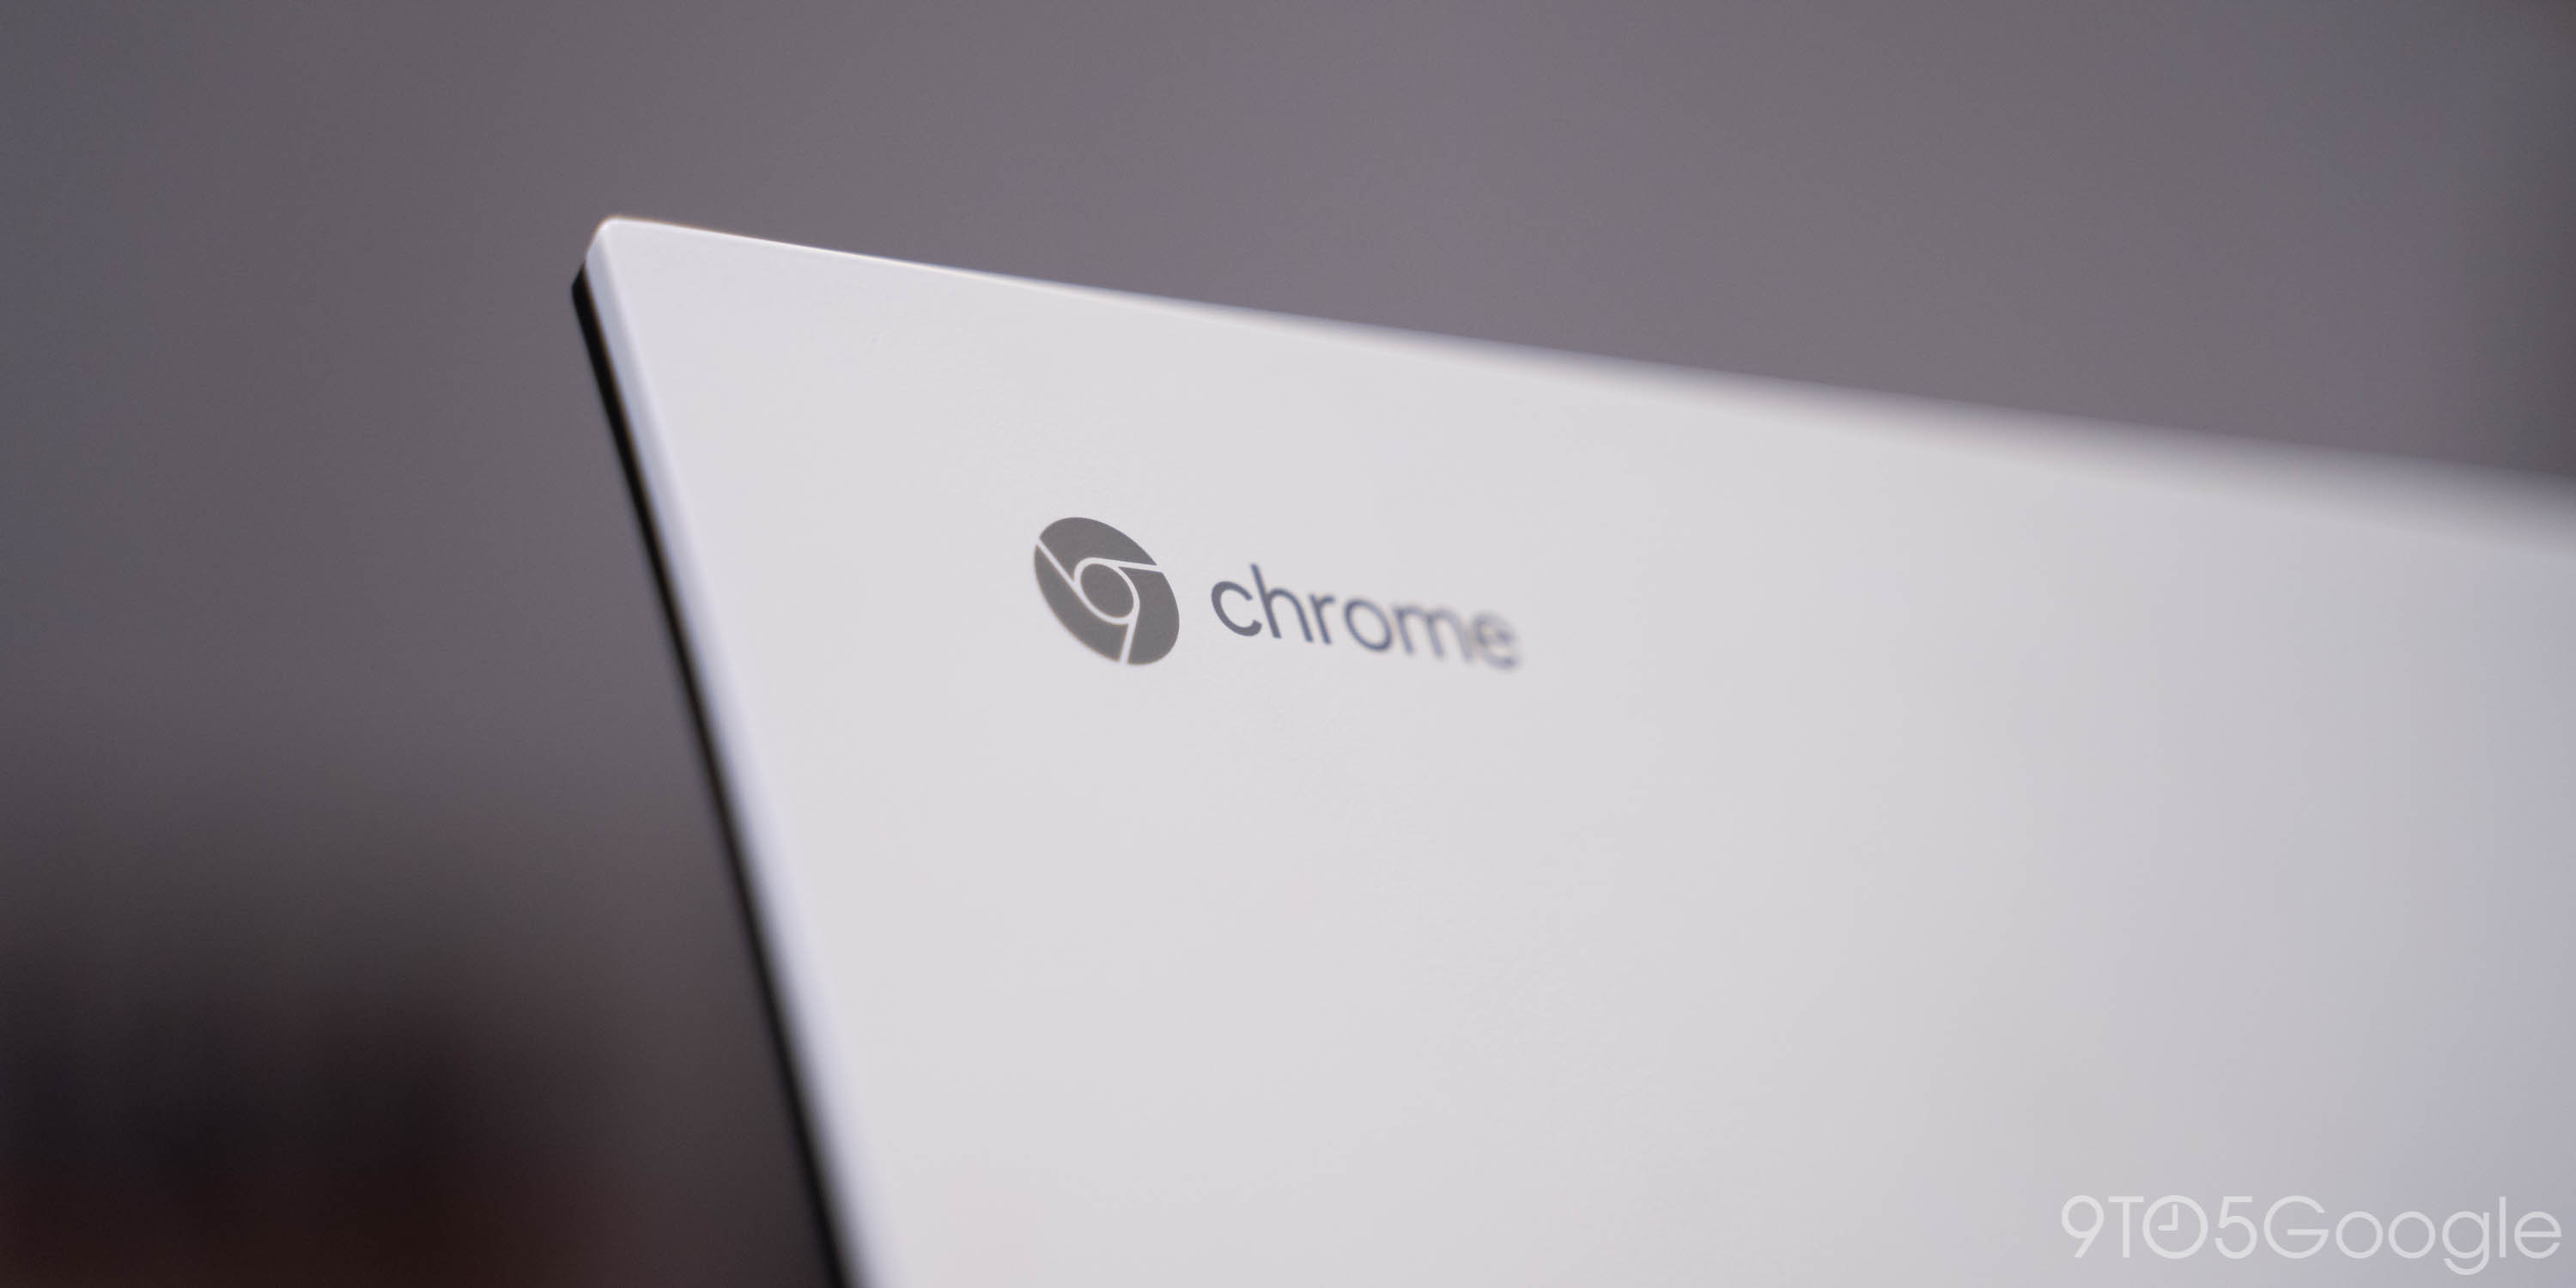 [U: New screenshot] Google details Windows apps on Chrome OS, Parallels will require high-end Chromebooks